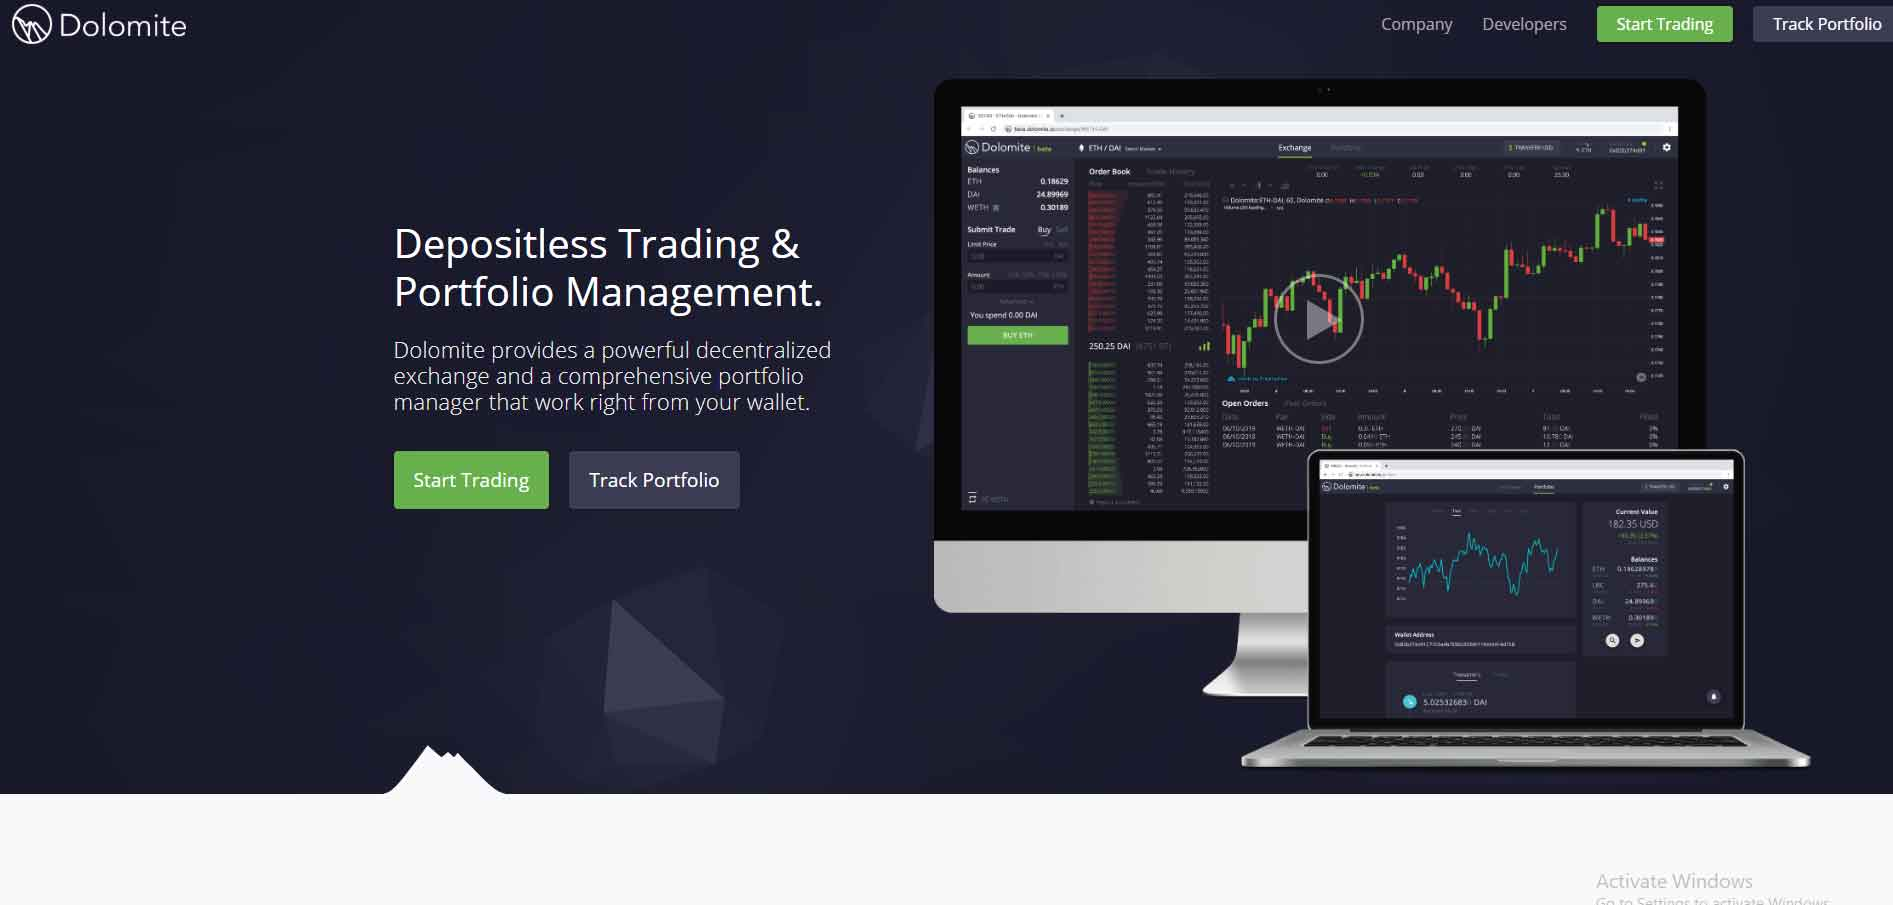 portfolio management tracker tool